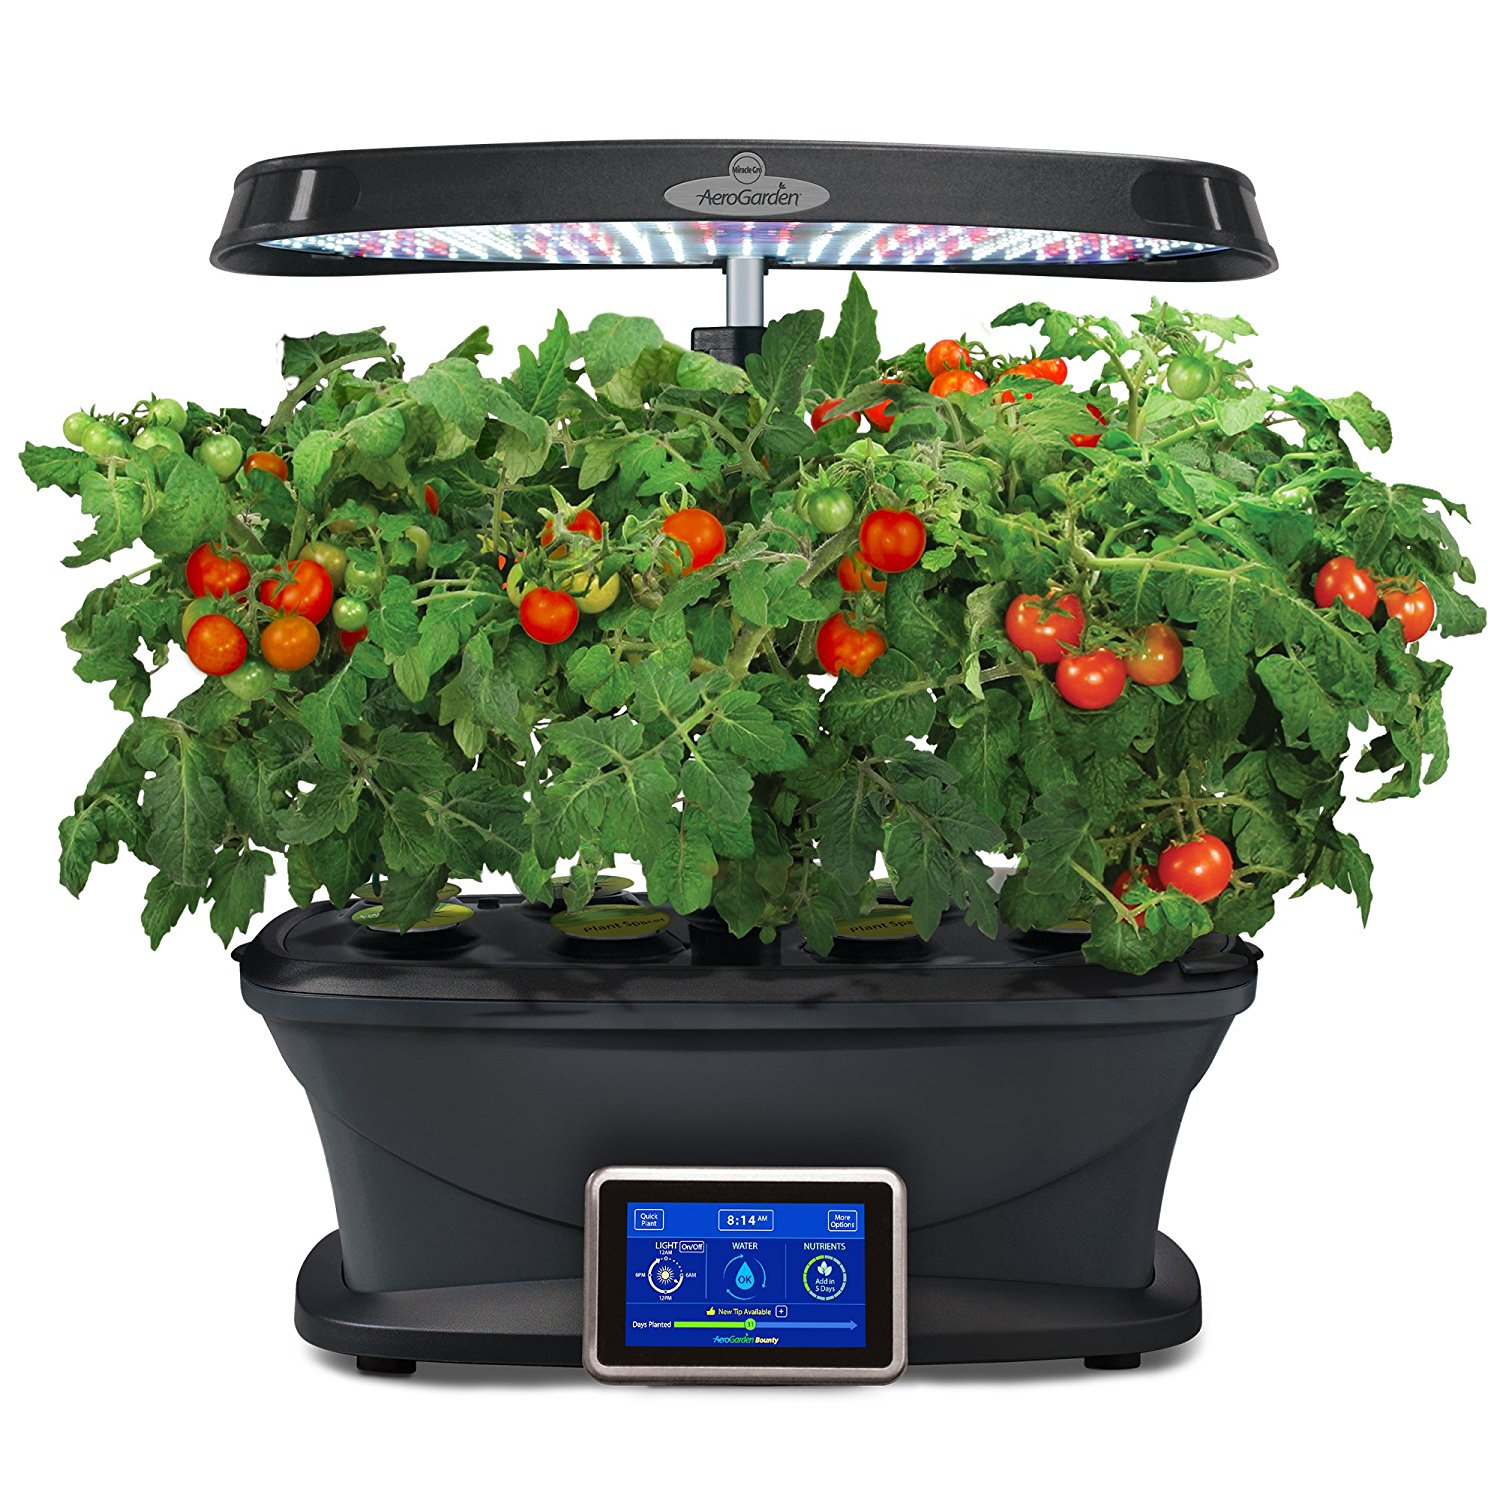 Miracle Gro Aerogarden Reviews Compare The Best Models